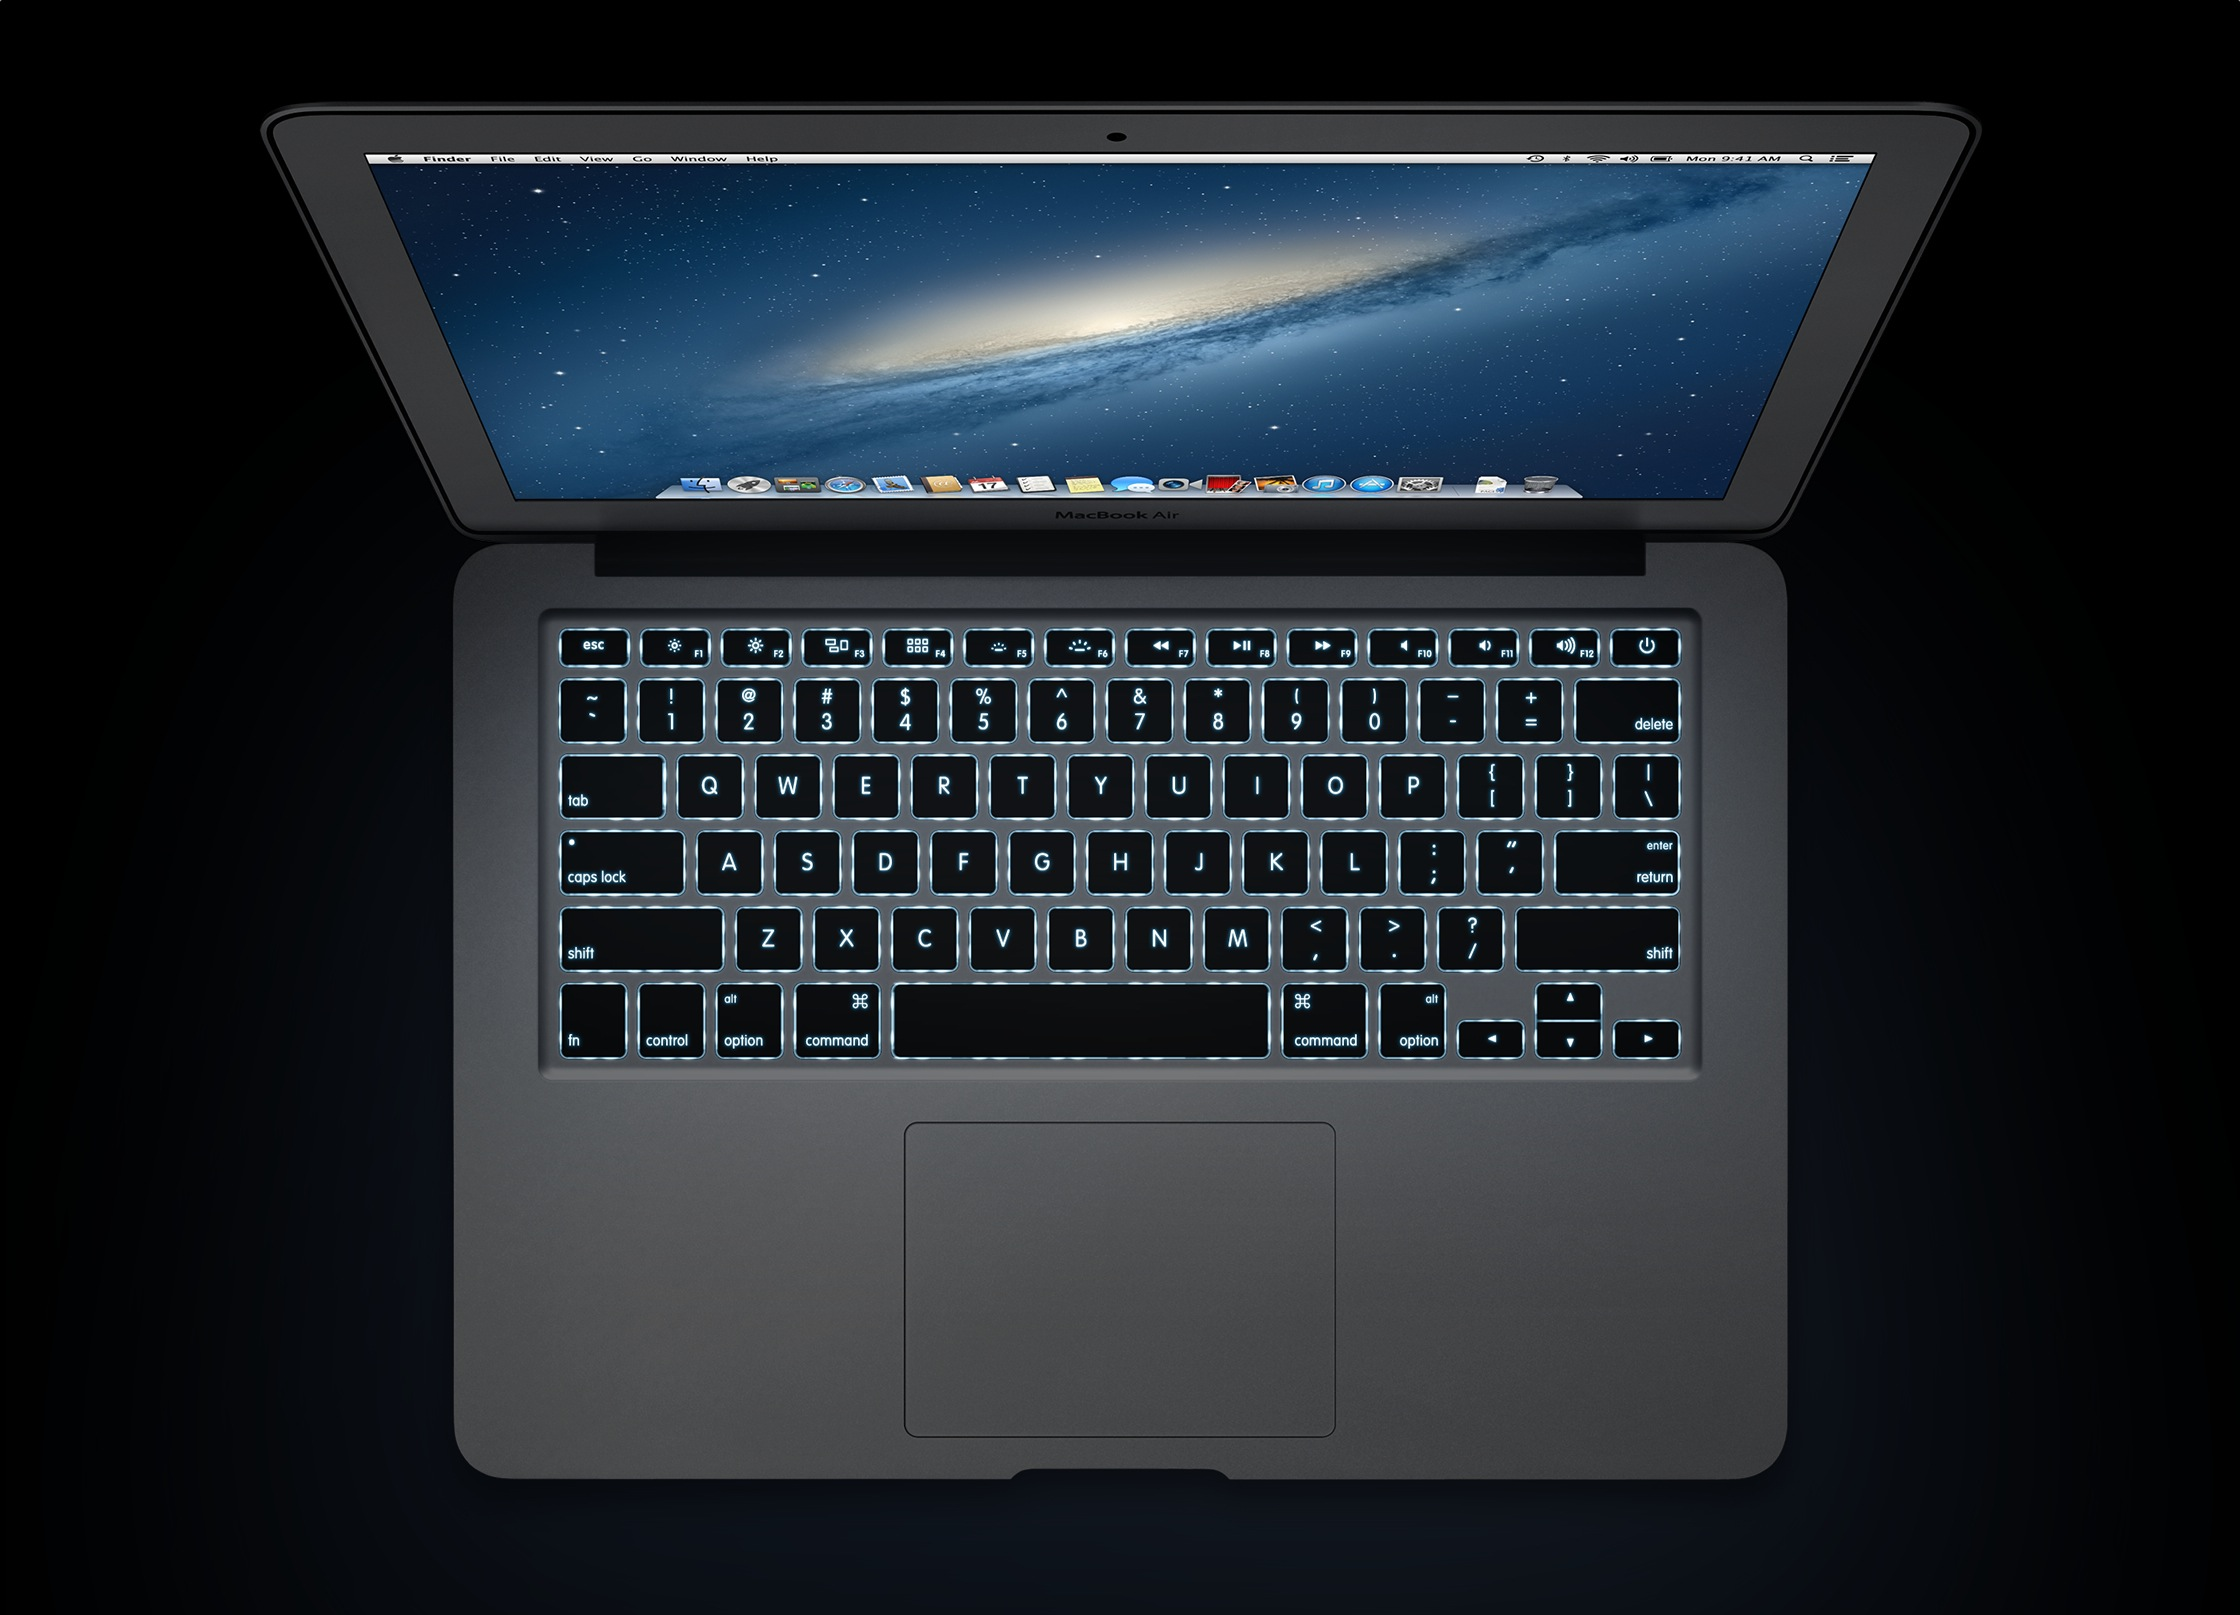 MacBook Air com teclado iluminado